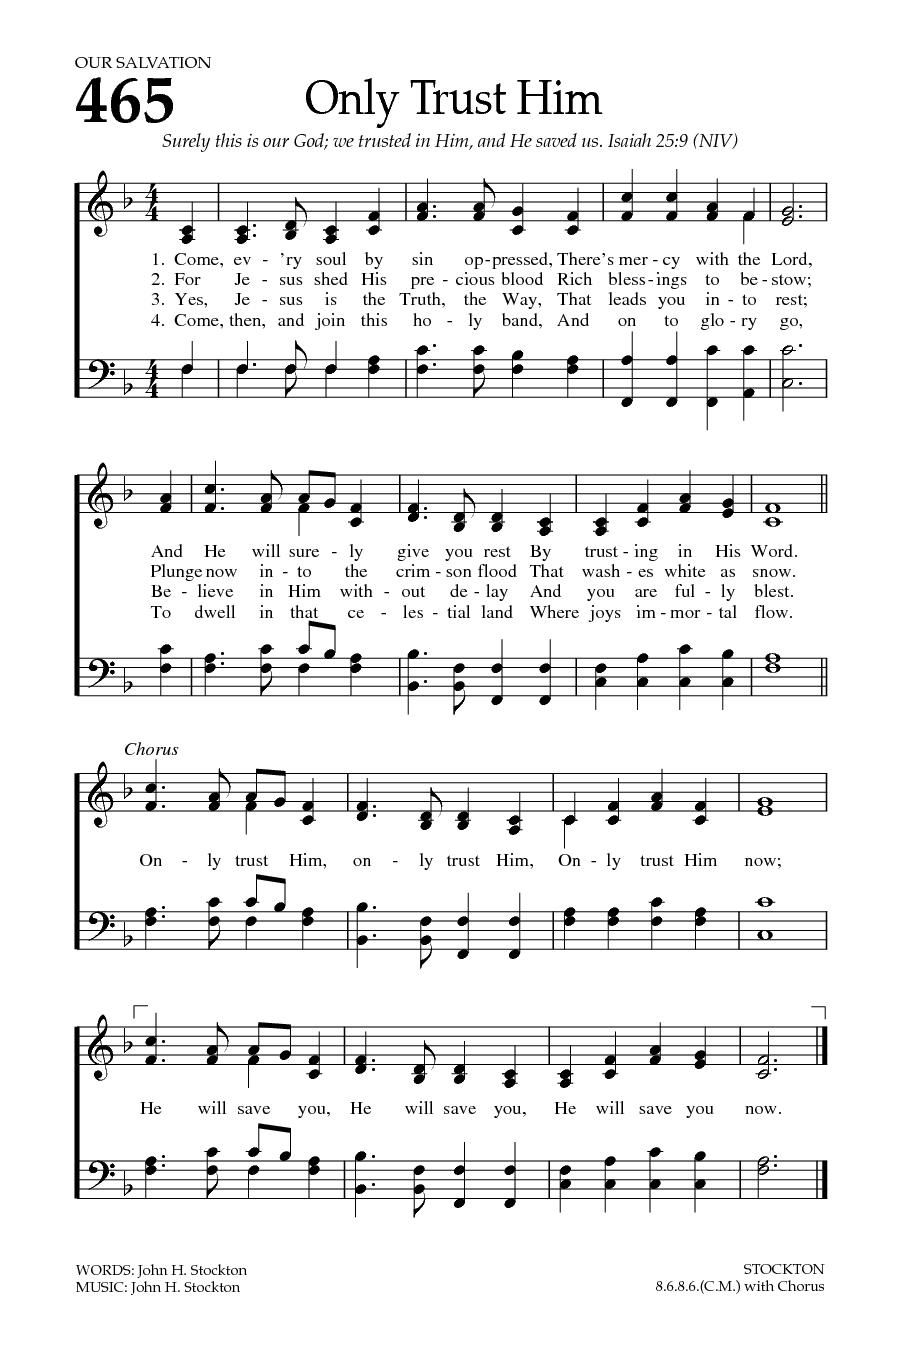 Praise songs about salvation